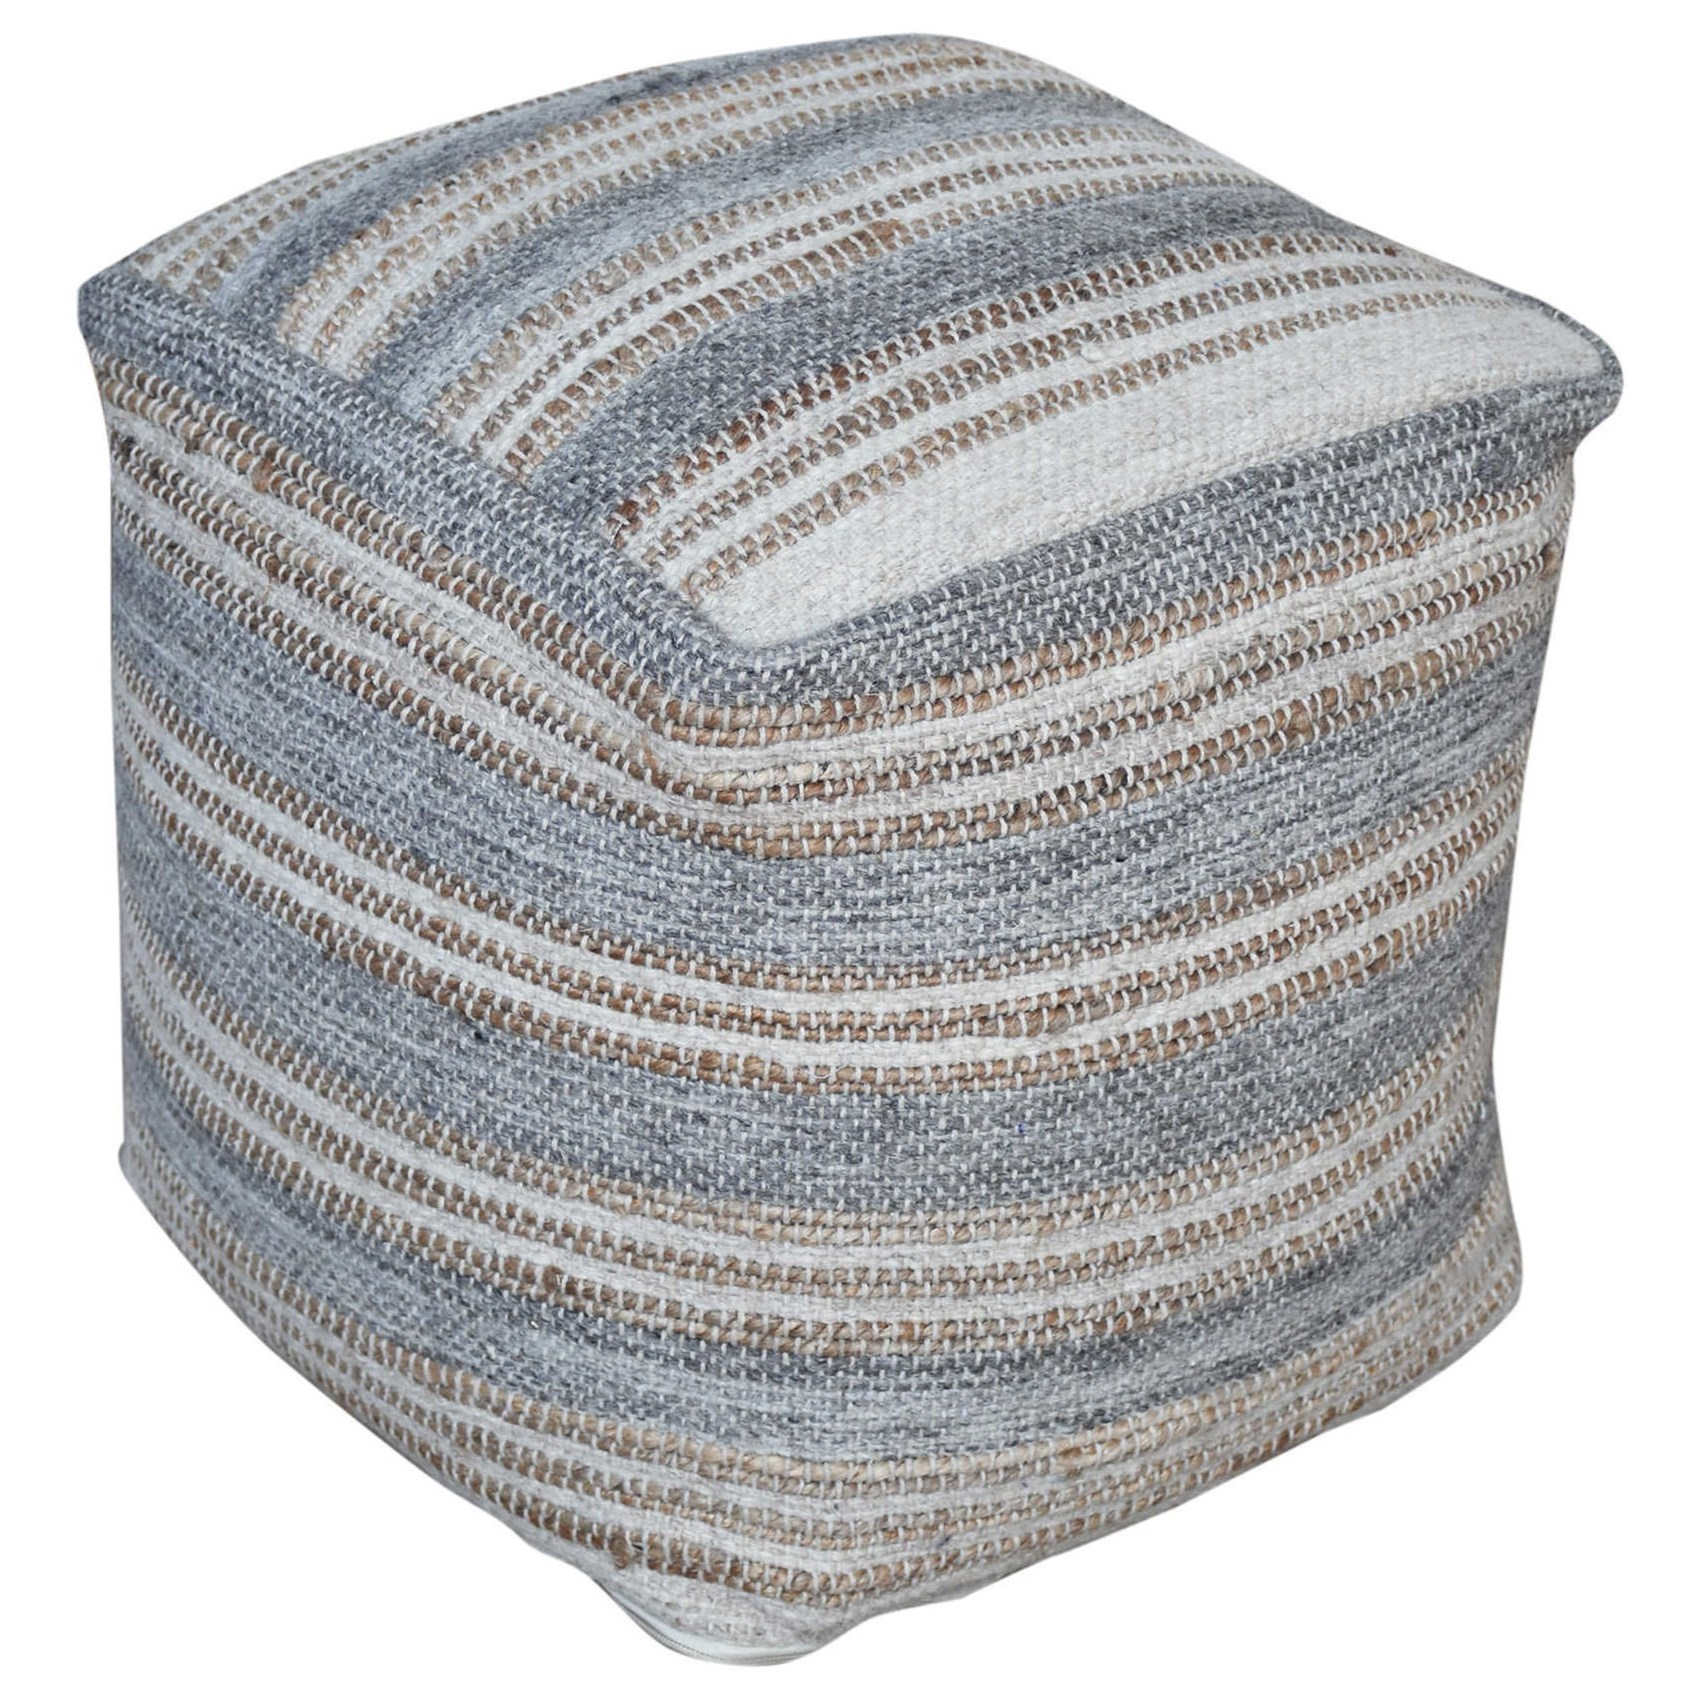 Accent Furniture - Ottomans Mesick Handwoven Gray Pouf by Uttermost at Upper Room Home Furnishings